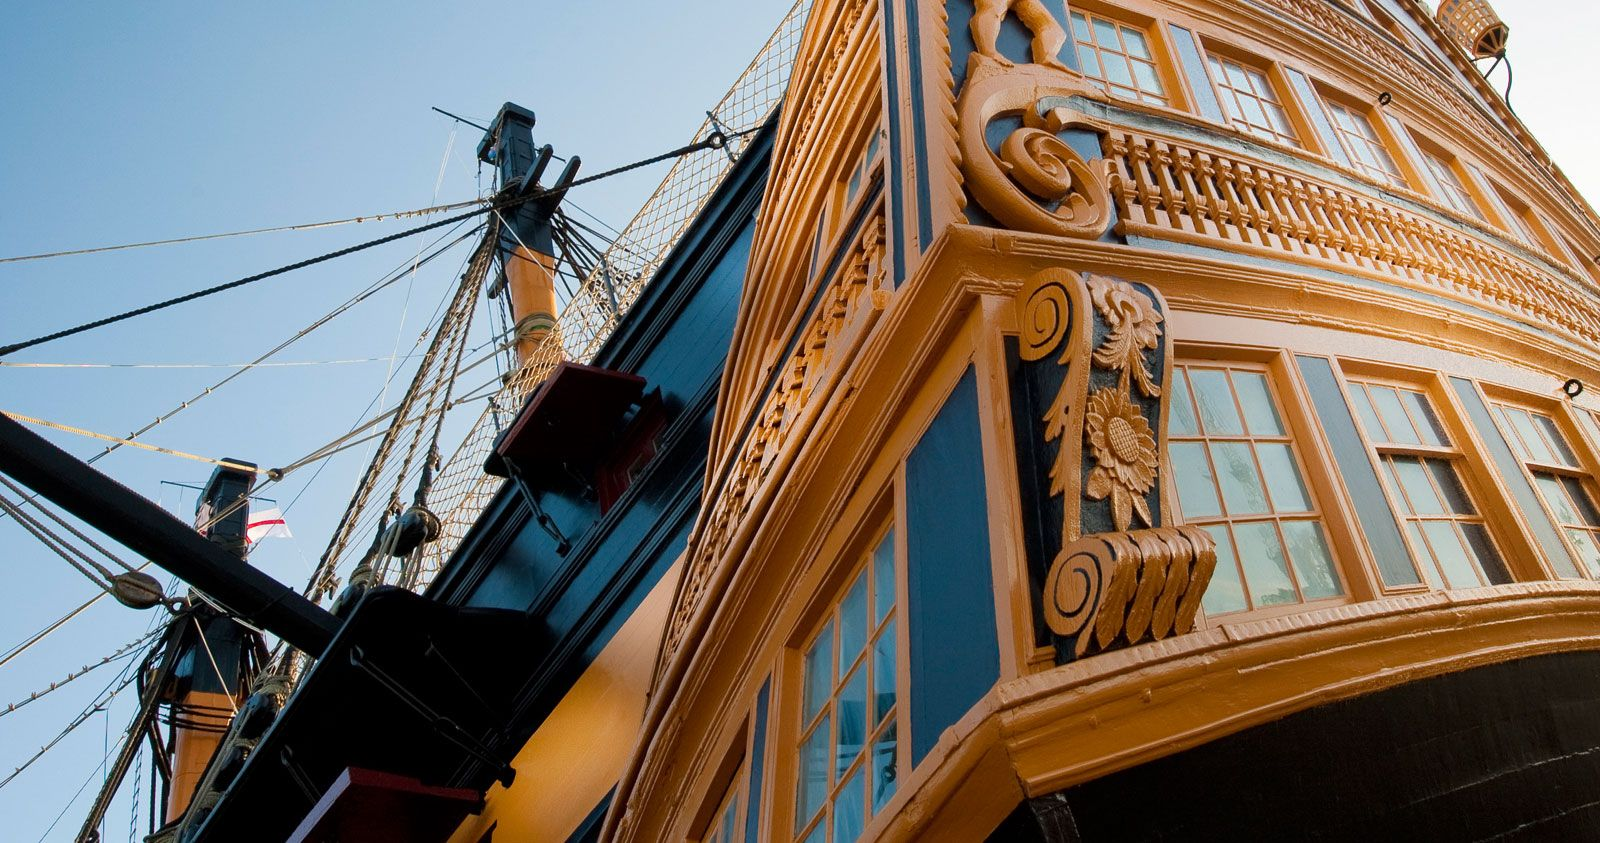 Walk the historic decks of Nelson's celebrated HMS Victory